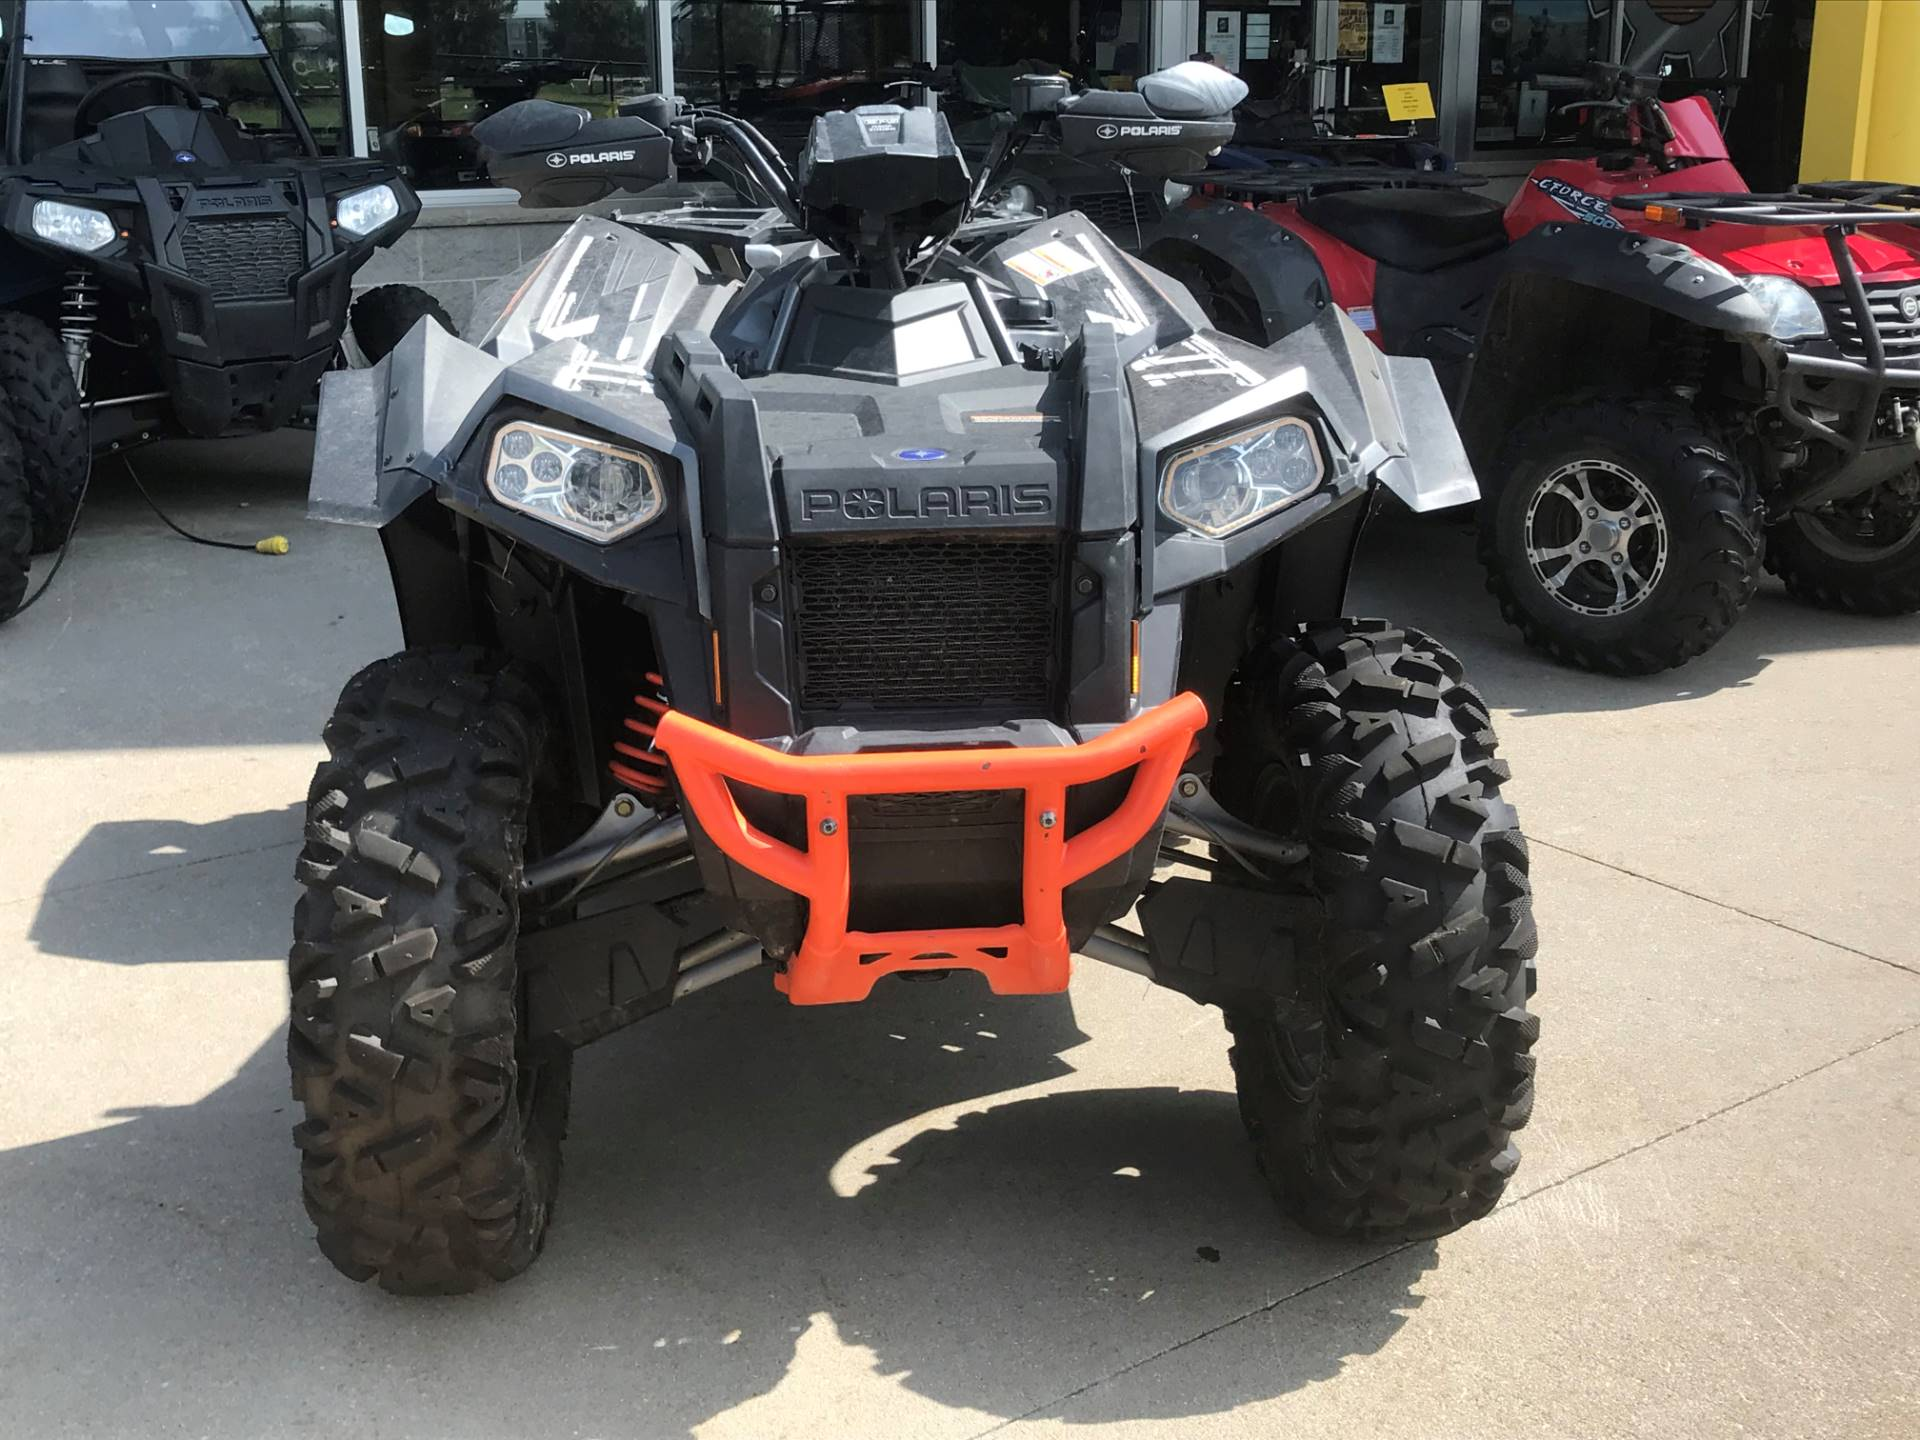 2017 Polaris Scrambler XP 1000 in Iowa City, Iowa - Photo 4